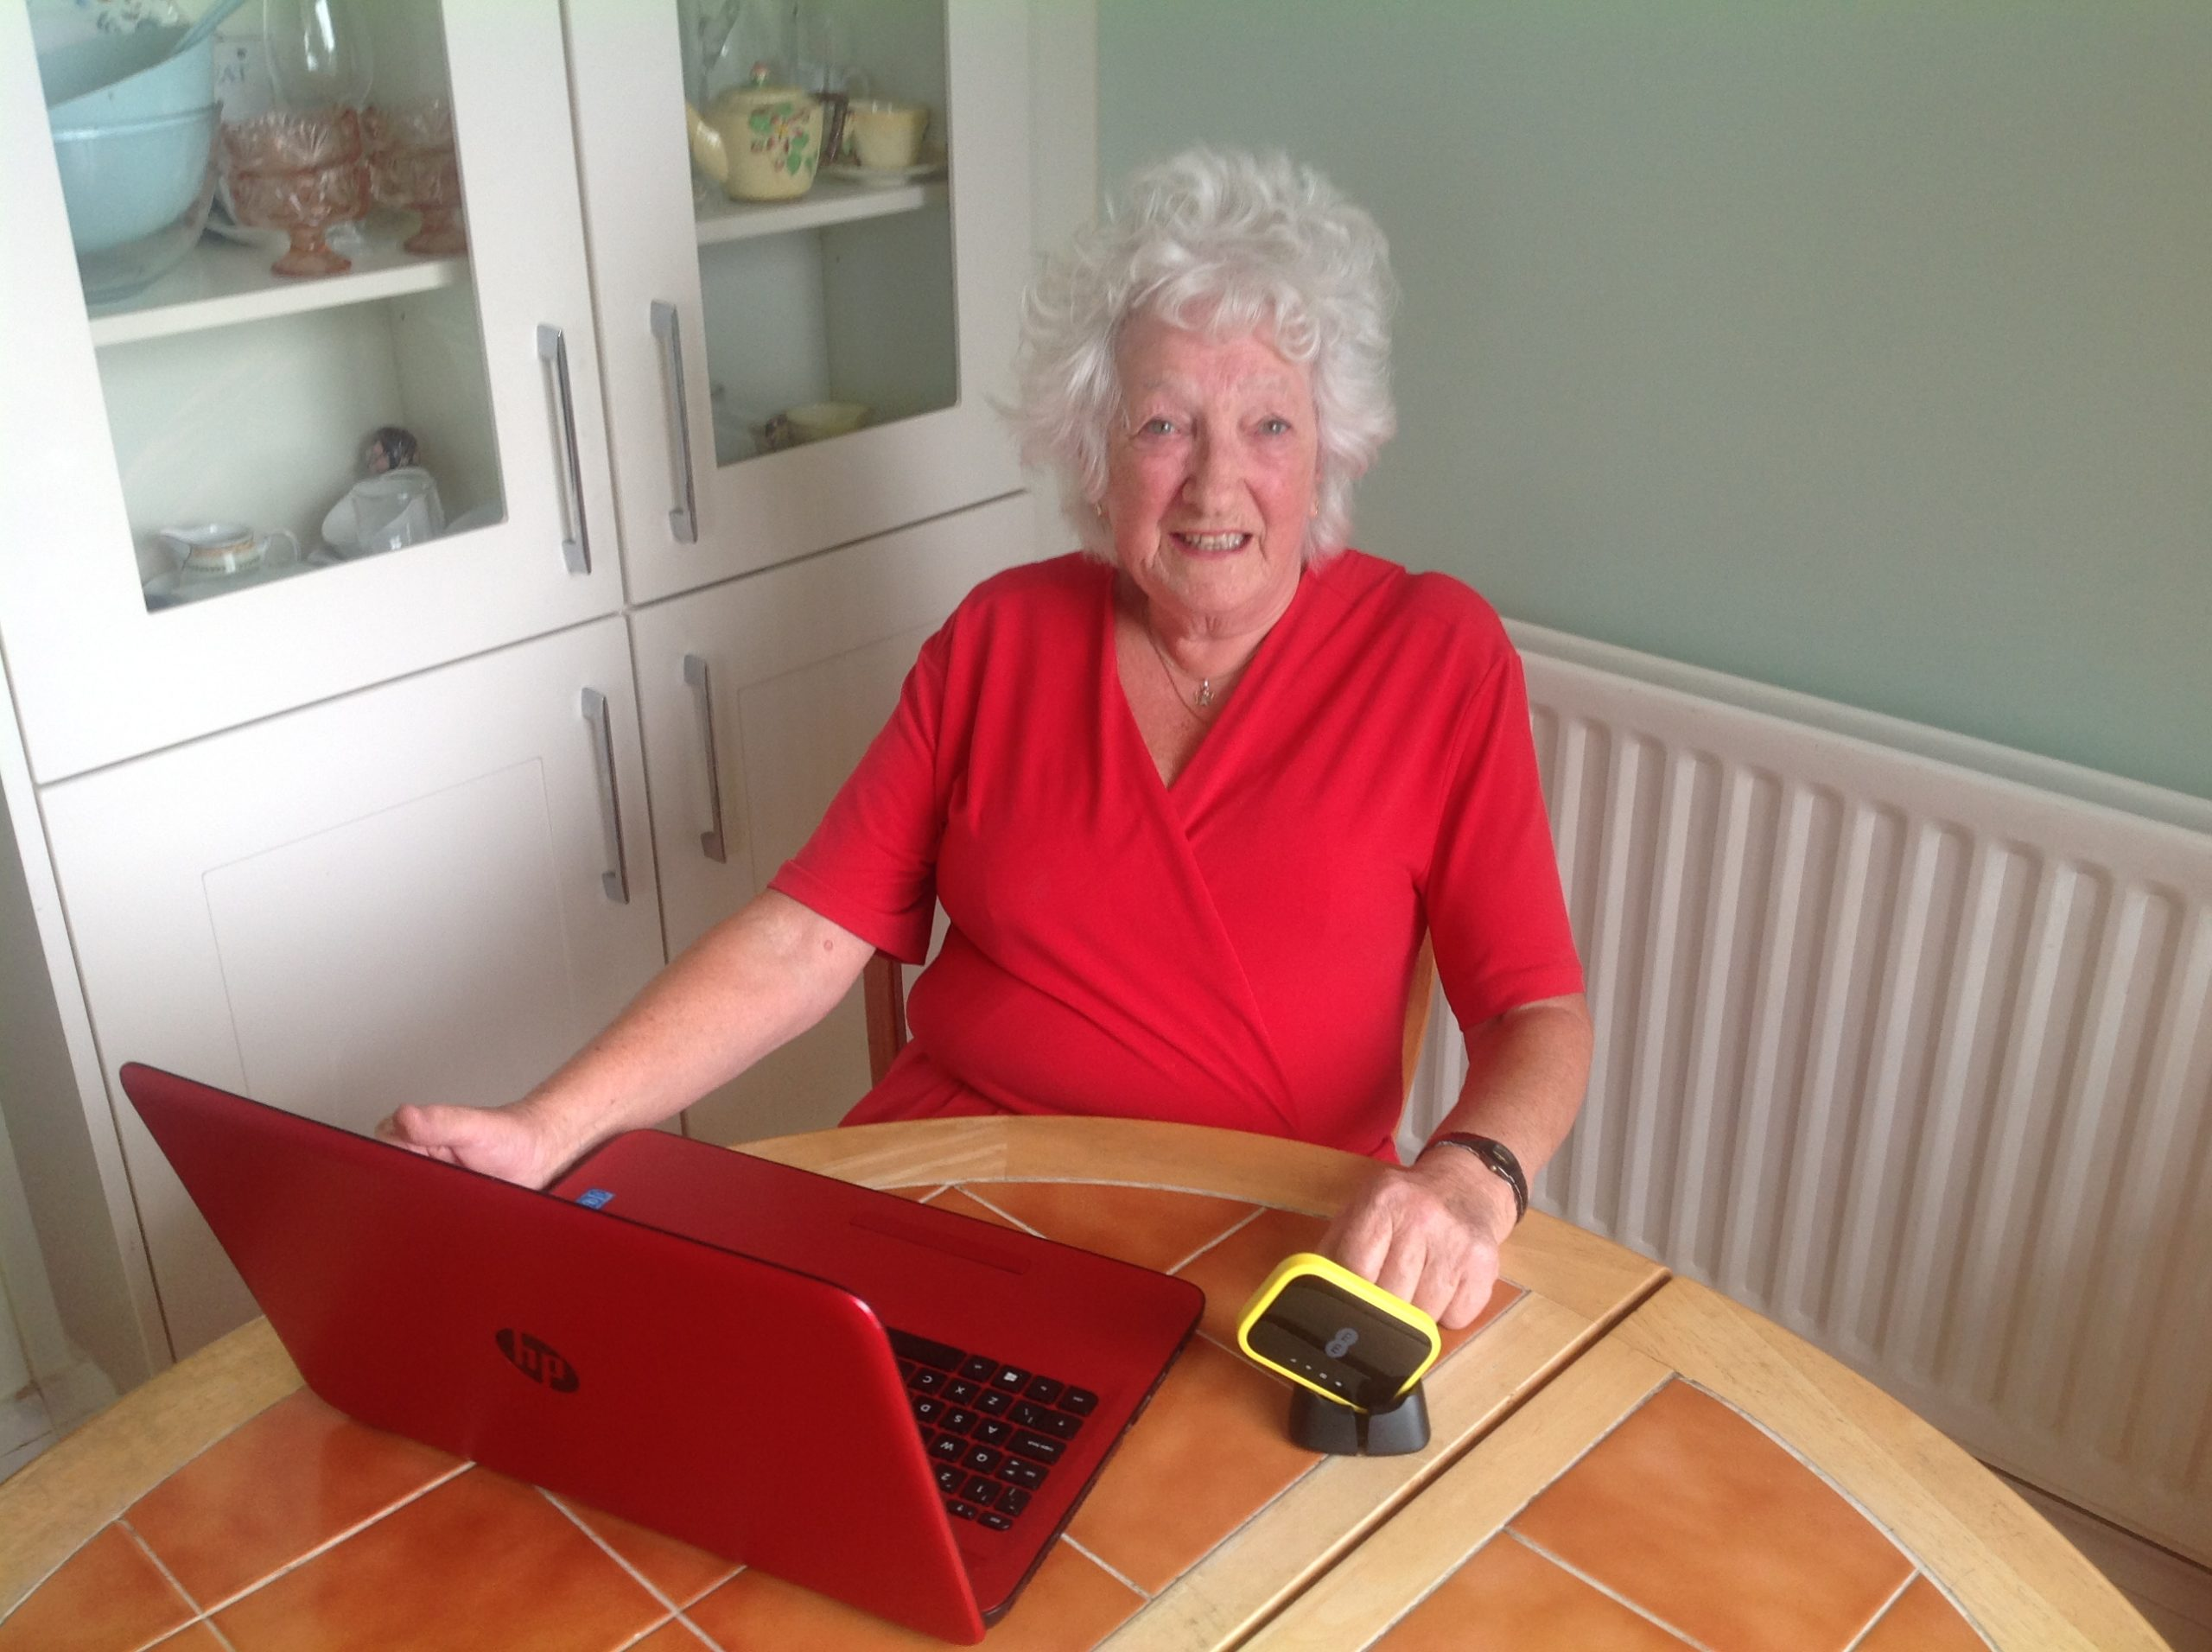 Nikki Moss from Riverside's Ashton Court retirement living scheme in Birkdale was given a Mi-fi unit for her laptop so she can surf the internet anywhere she likes.